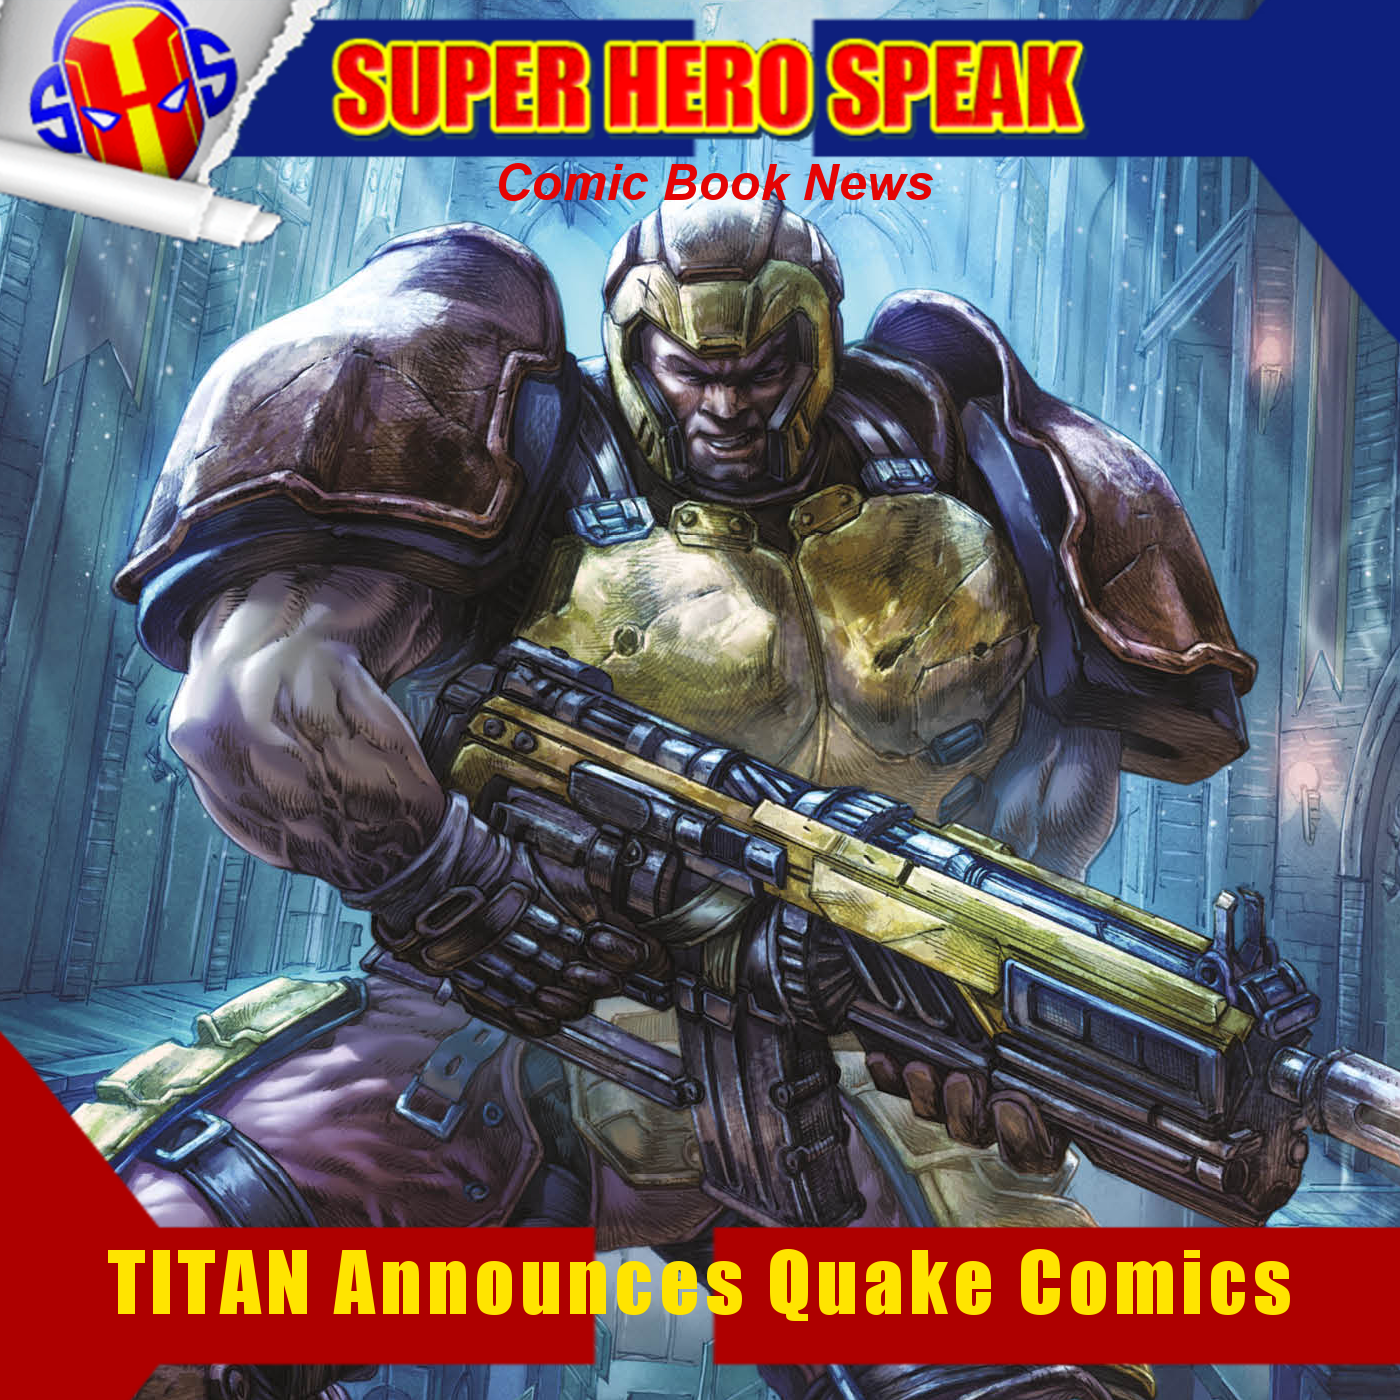 SHSNews: TITAN Announces Quake Comics